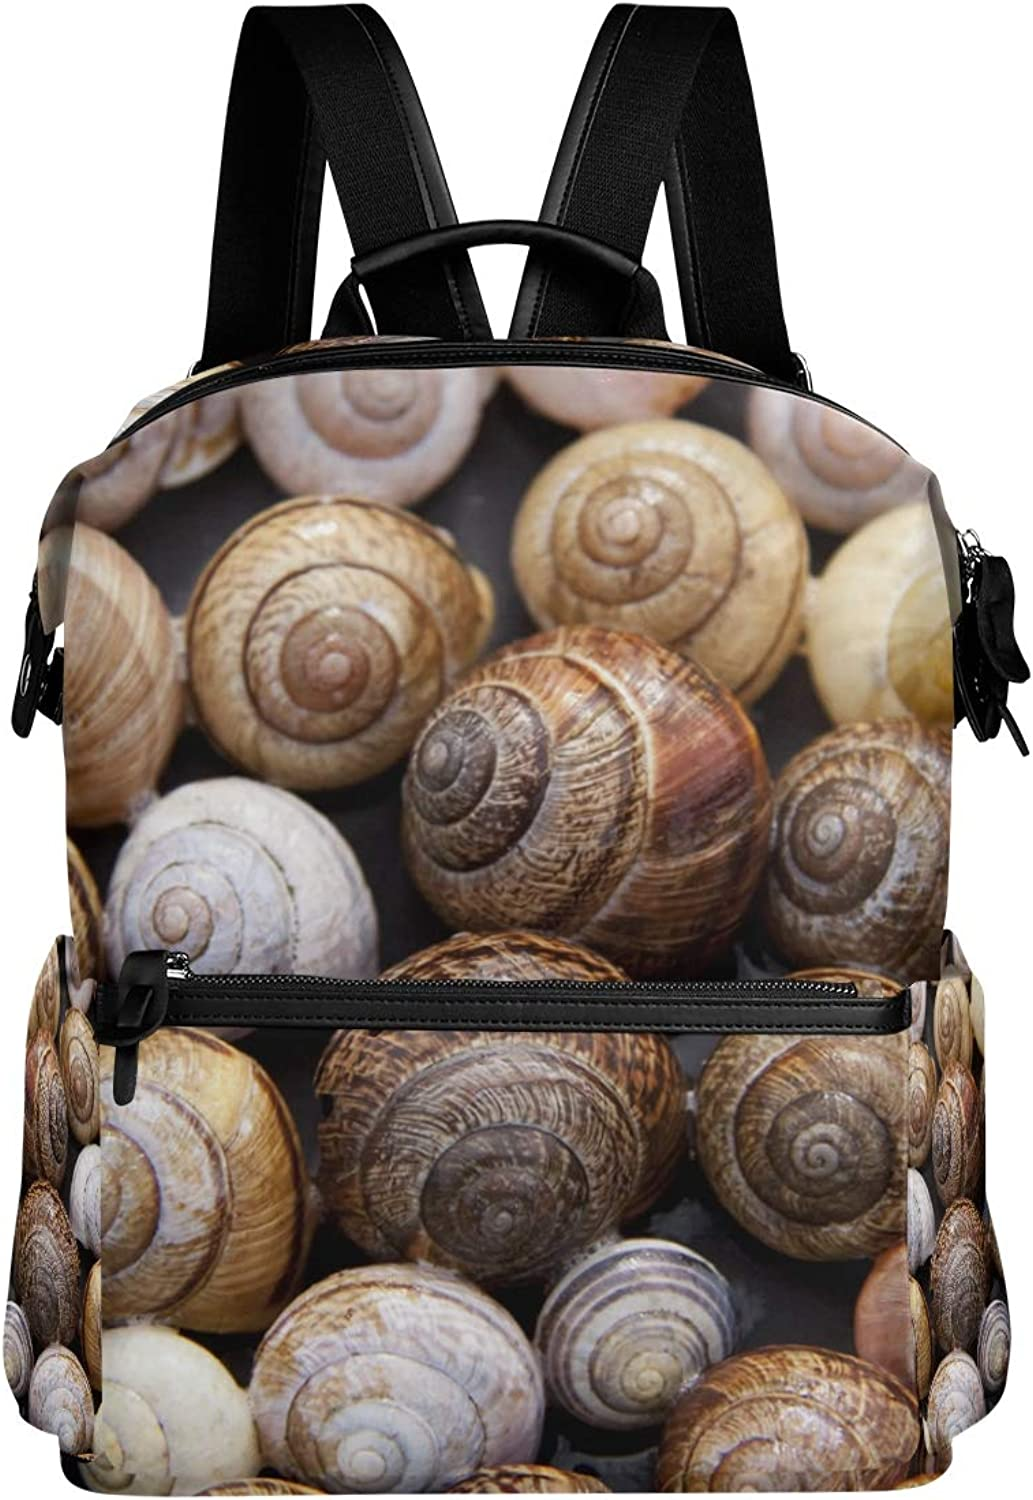 MONTOJ Clean Snail Shells Leather Travel Bag Campus Backpack